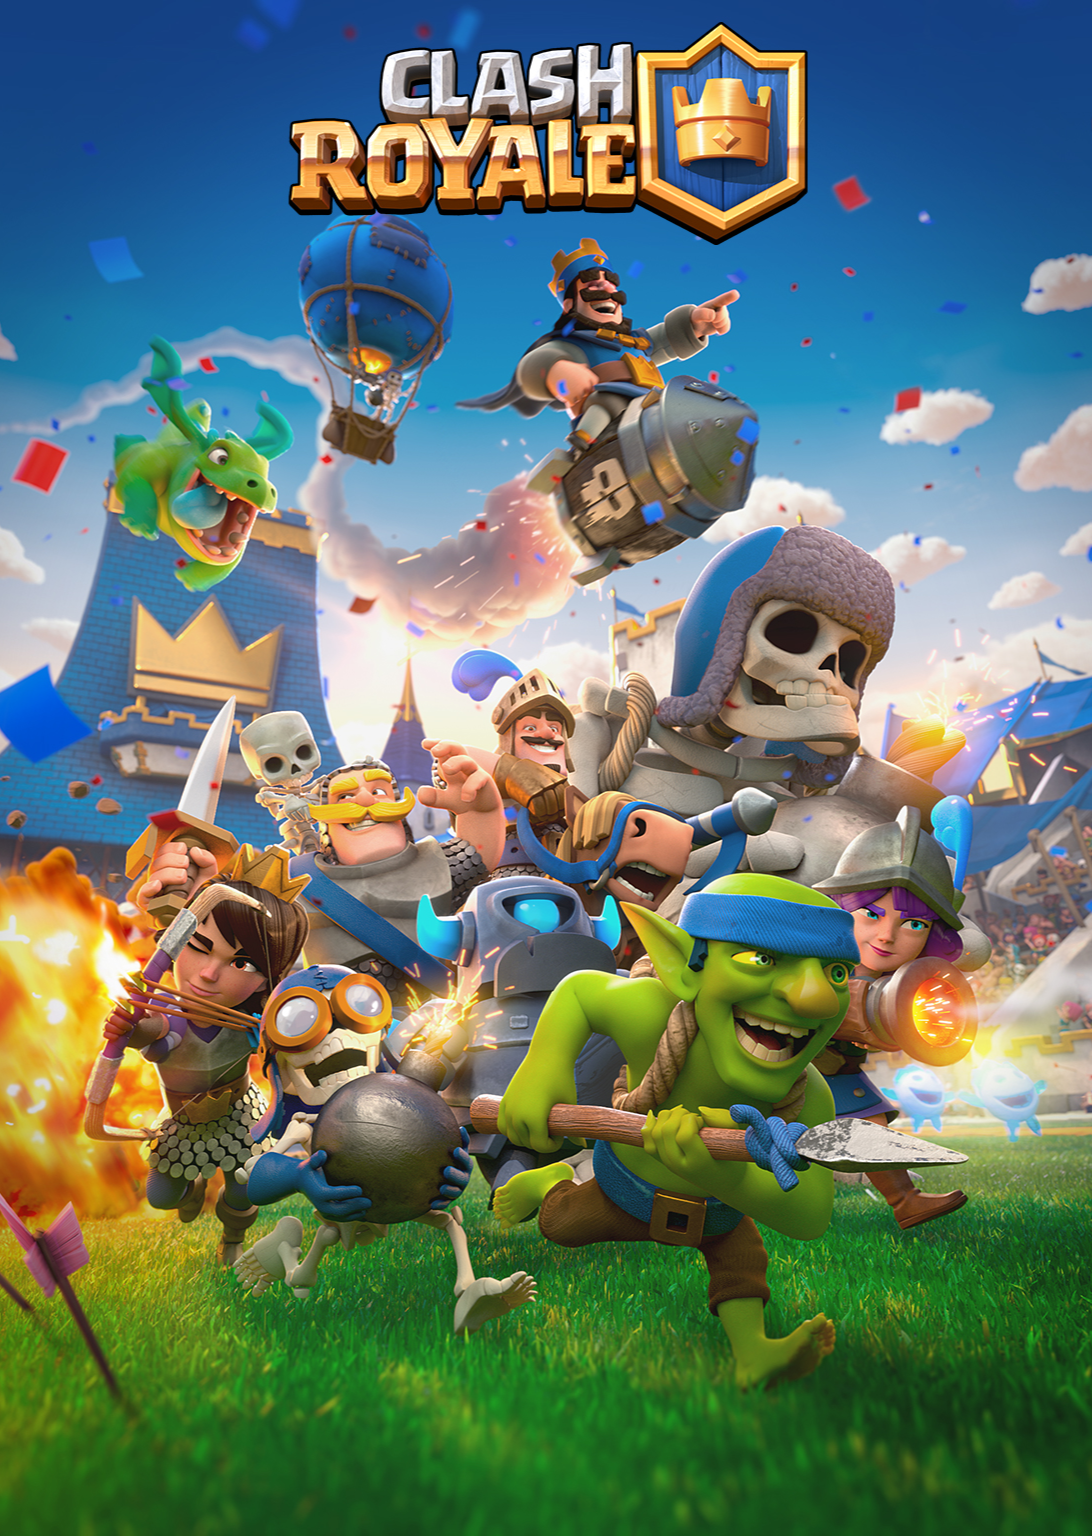 Clash Royale's cover